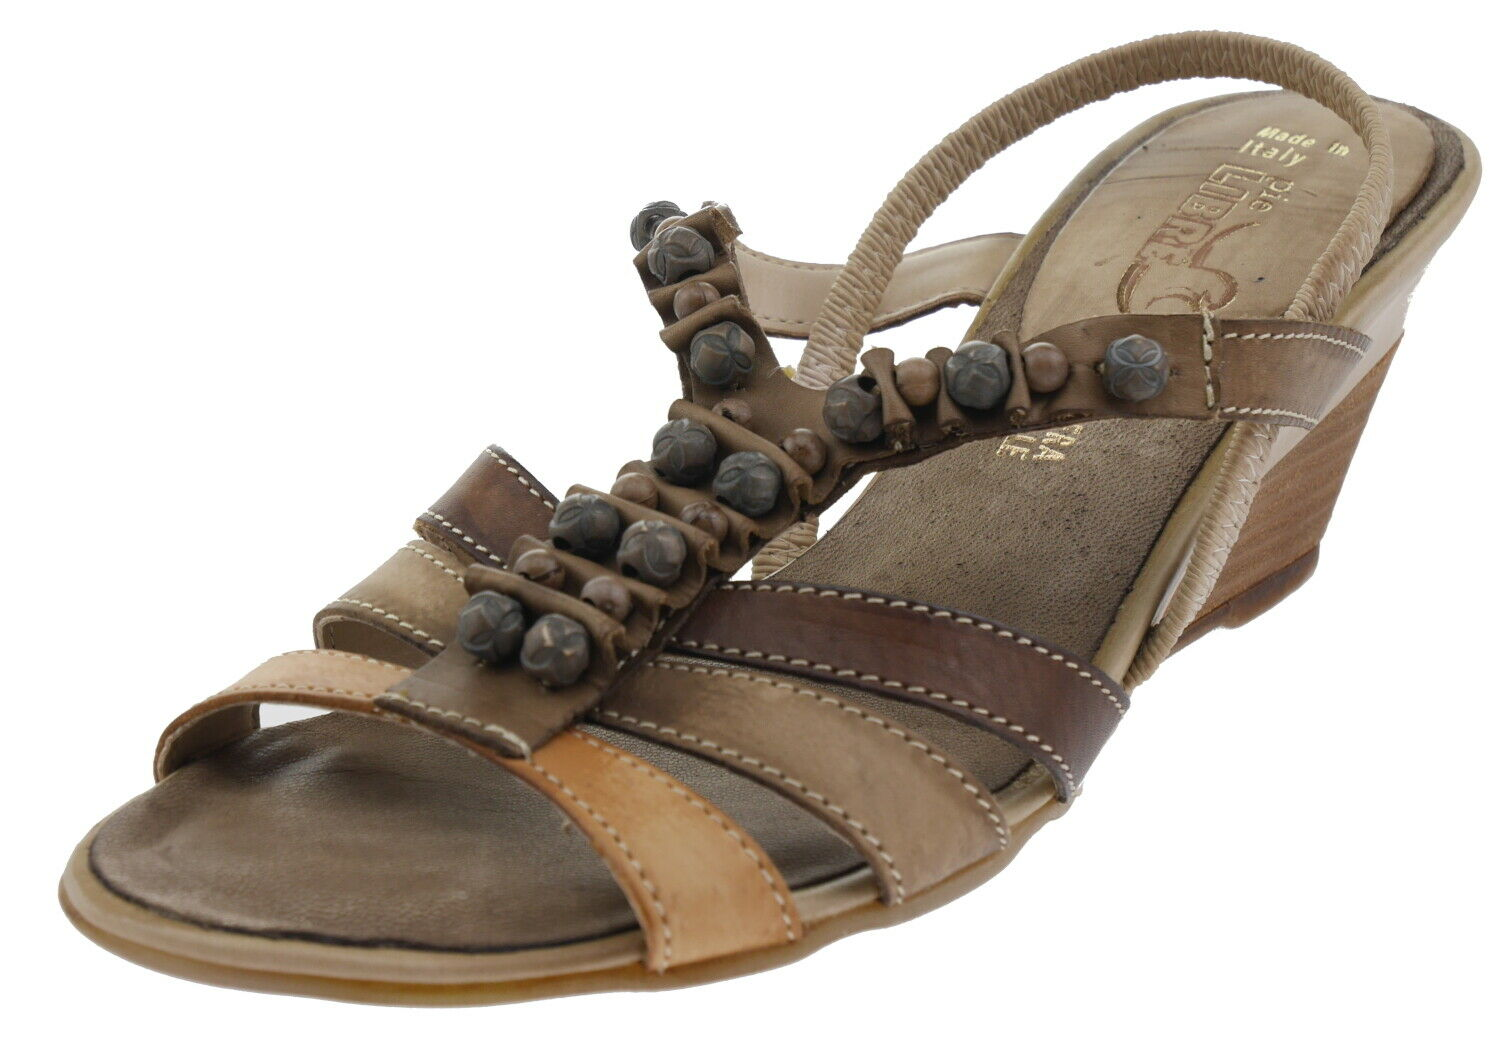 Pie Libre 79533pm Leather Sandals Brown 187755